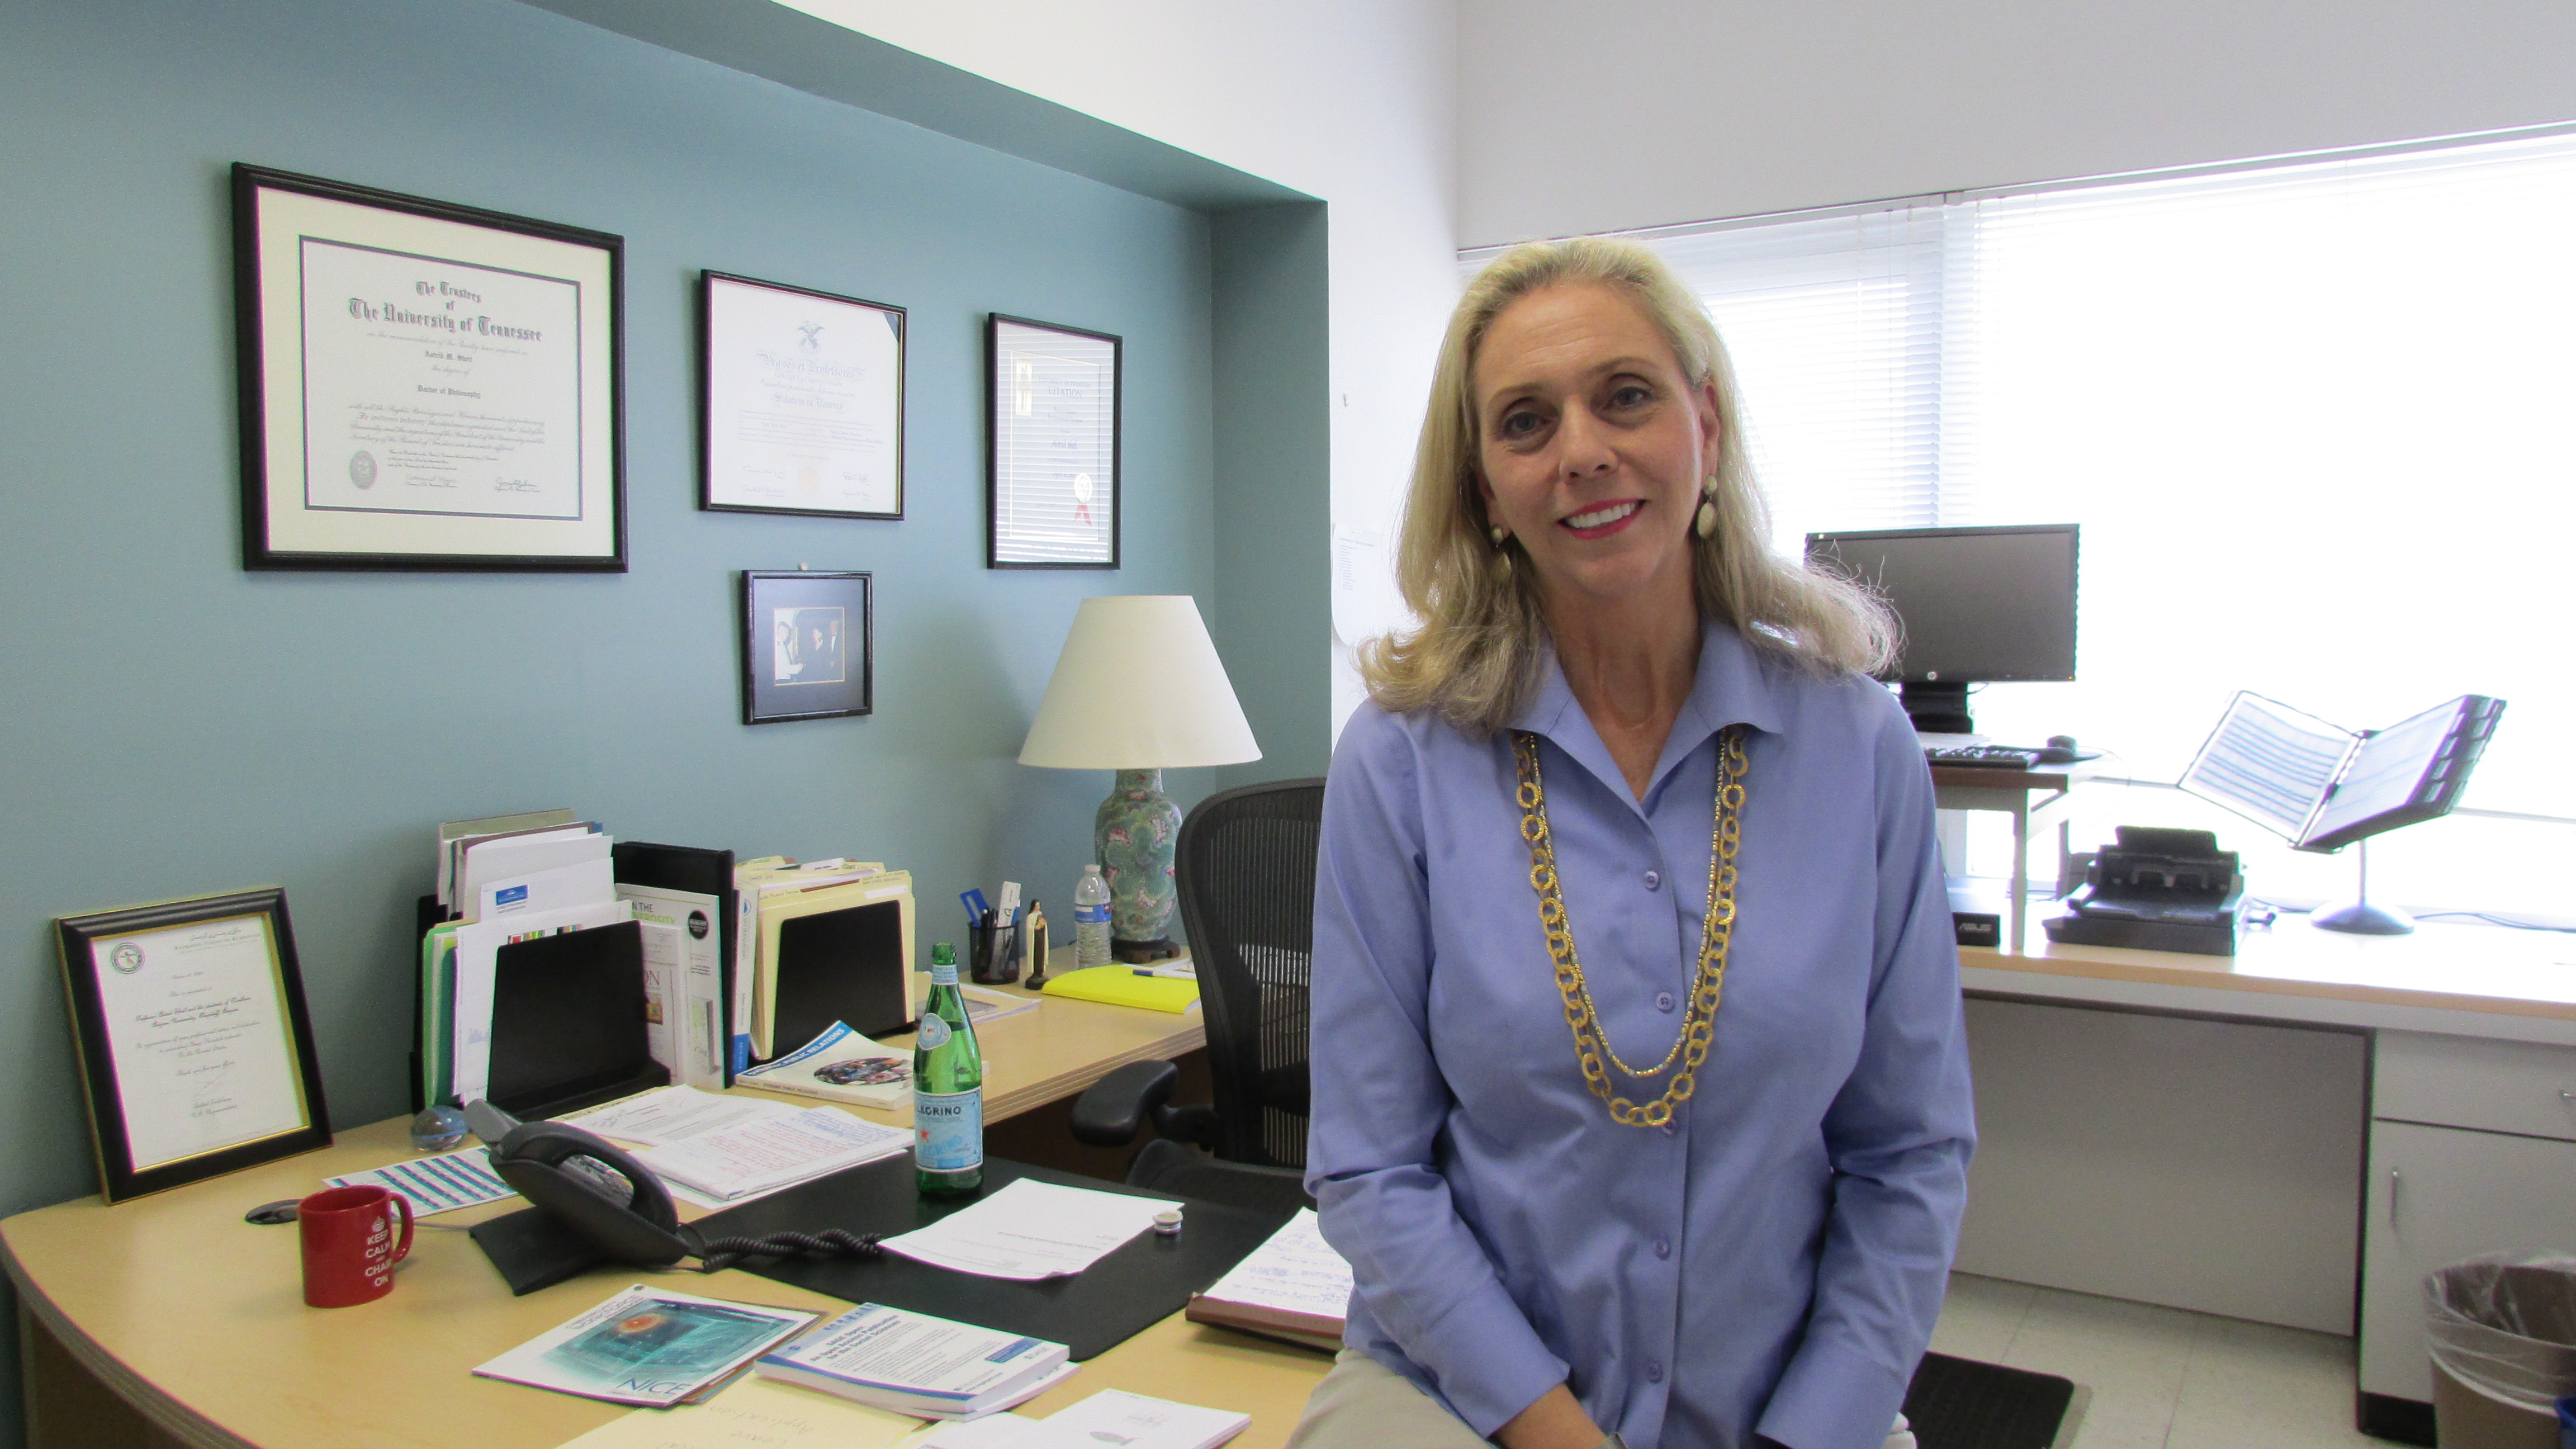 Dr. Astrid Sheil keeps busy on campus